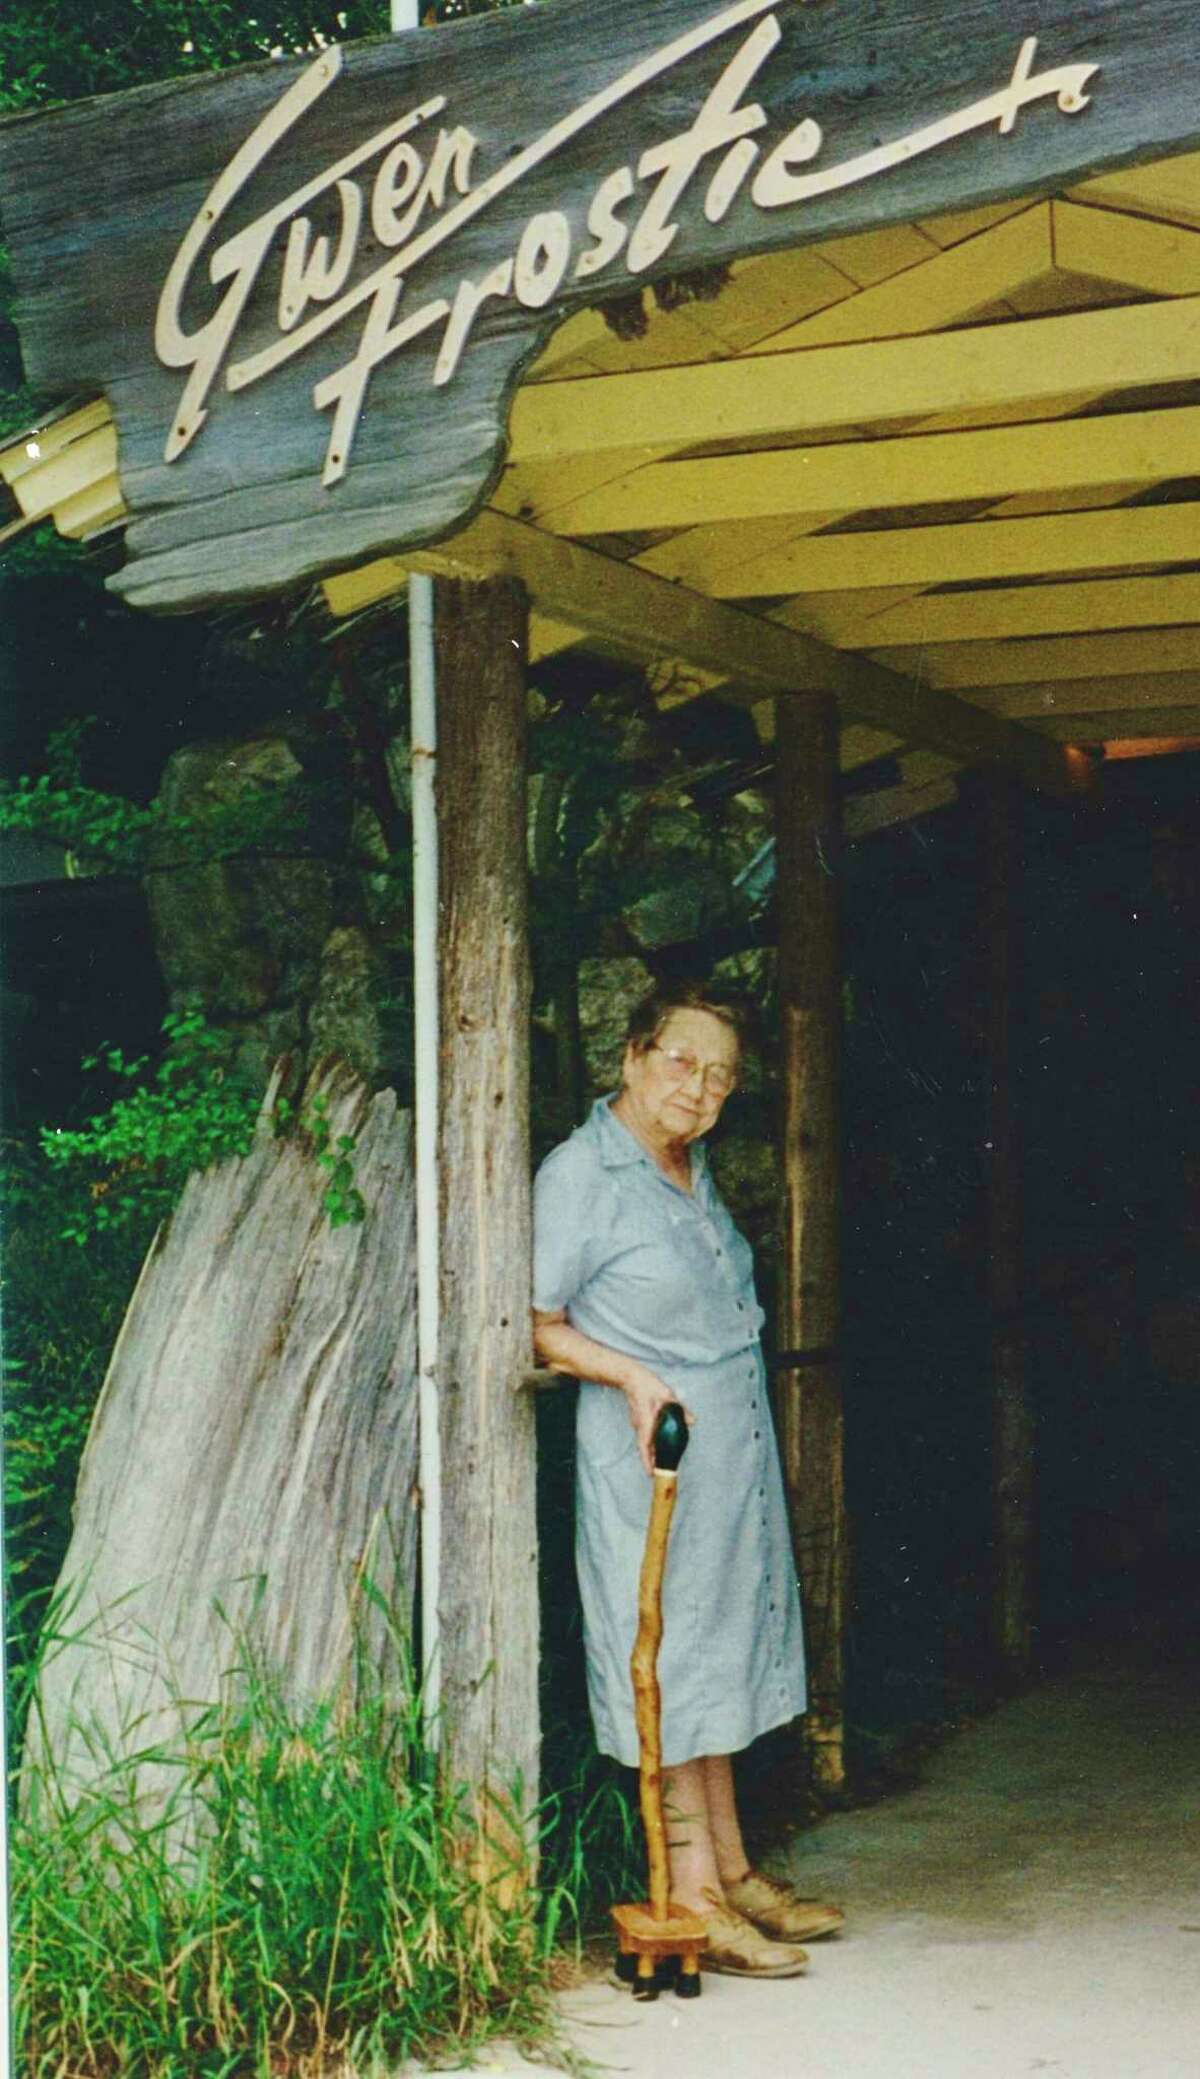 Gwen Frostic created Presscraft Papers in 1964 in Benzonia Township and sold her wilderness influenced art printed using mechanical printing presses which visitors could watch in action. (Courtesy Photo)